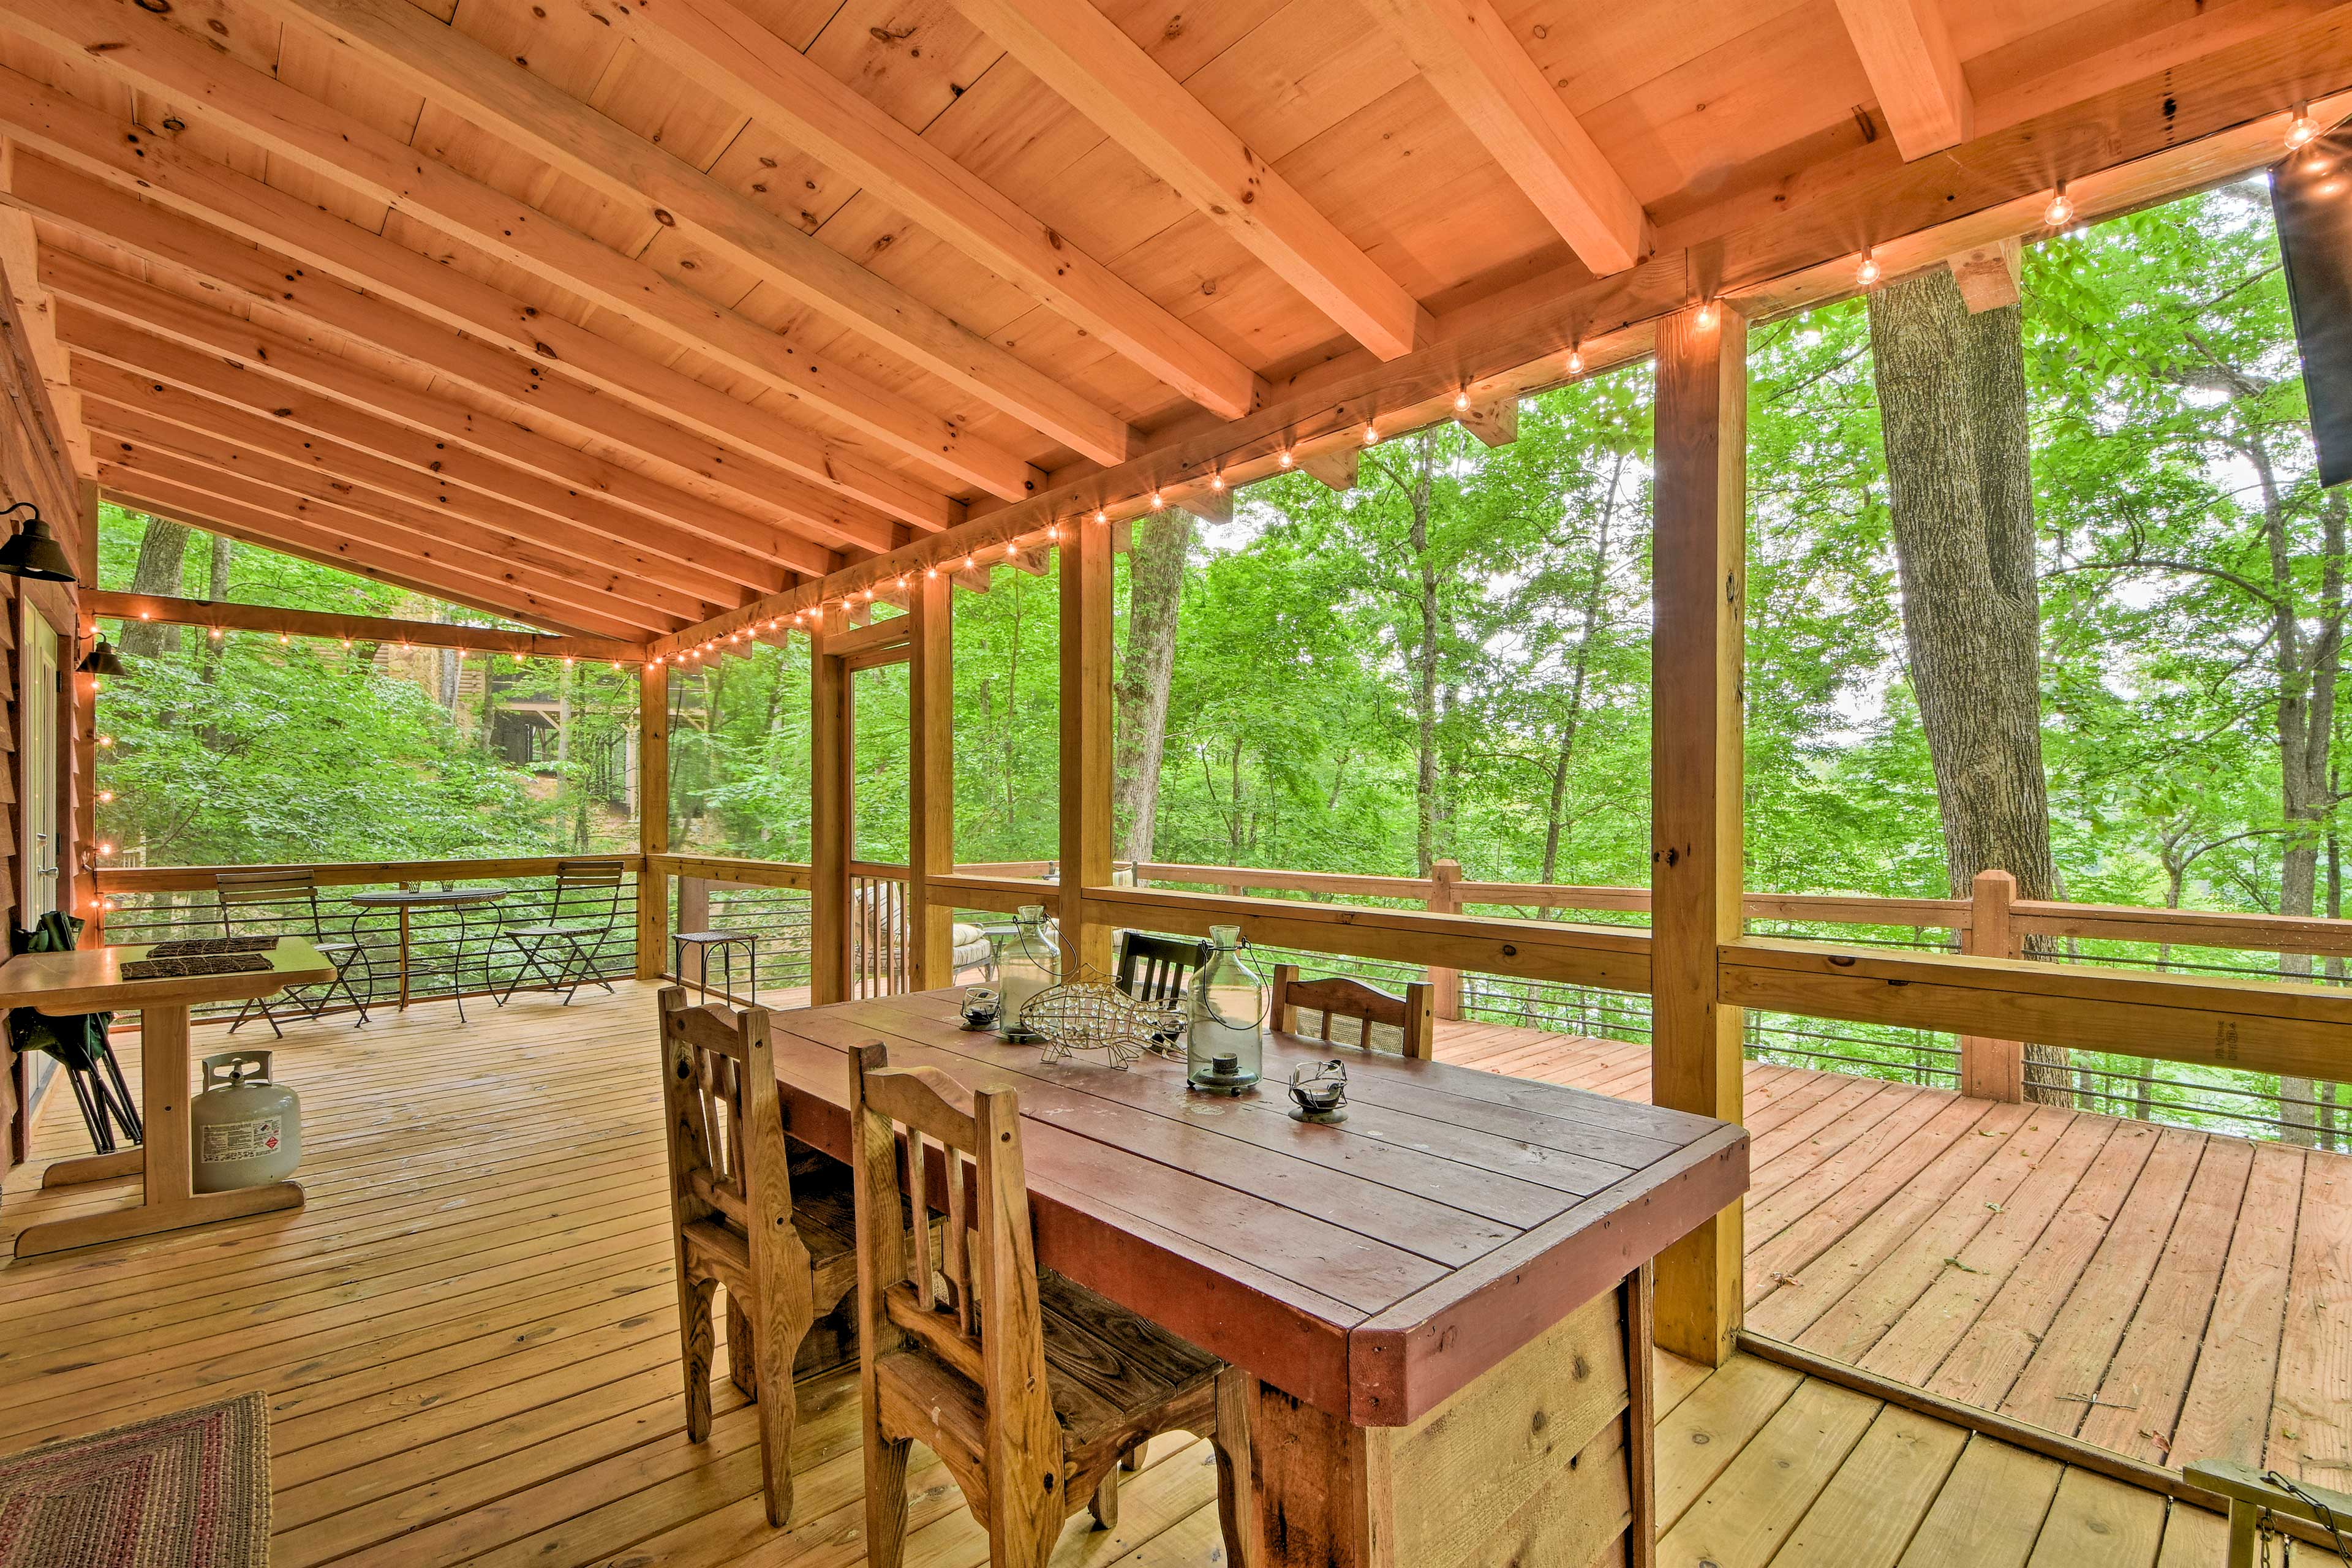 Spend evenings dining on the screened porch overlooking the forest & lake.